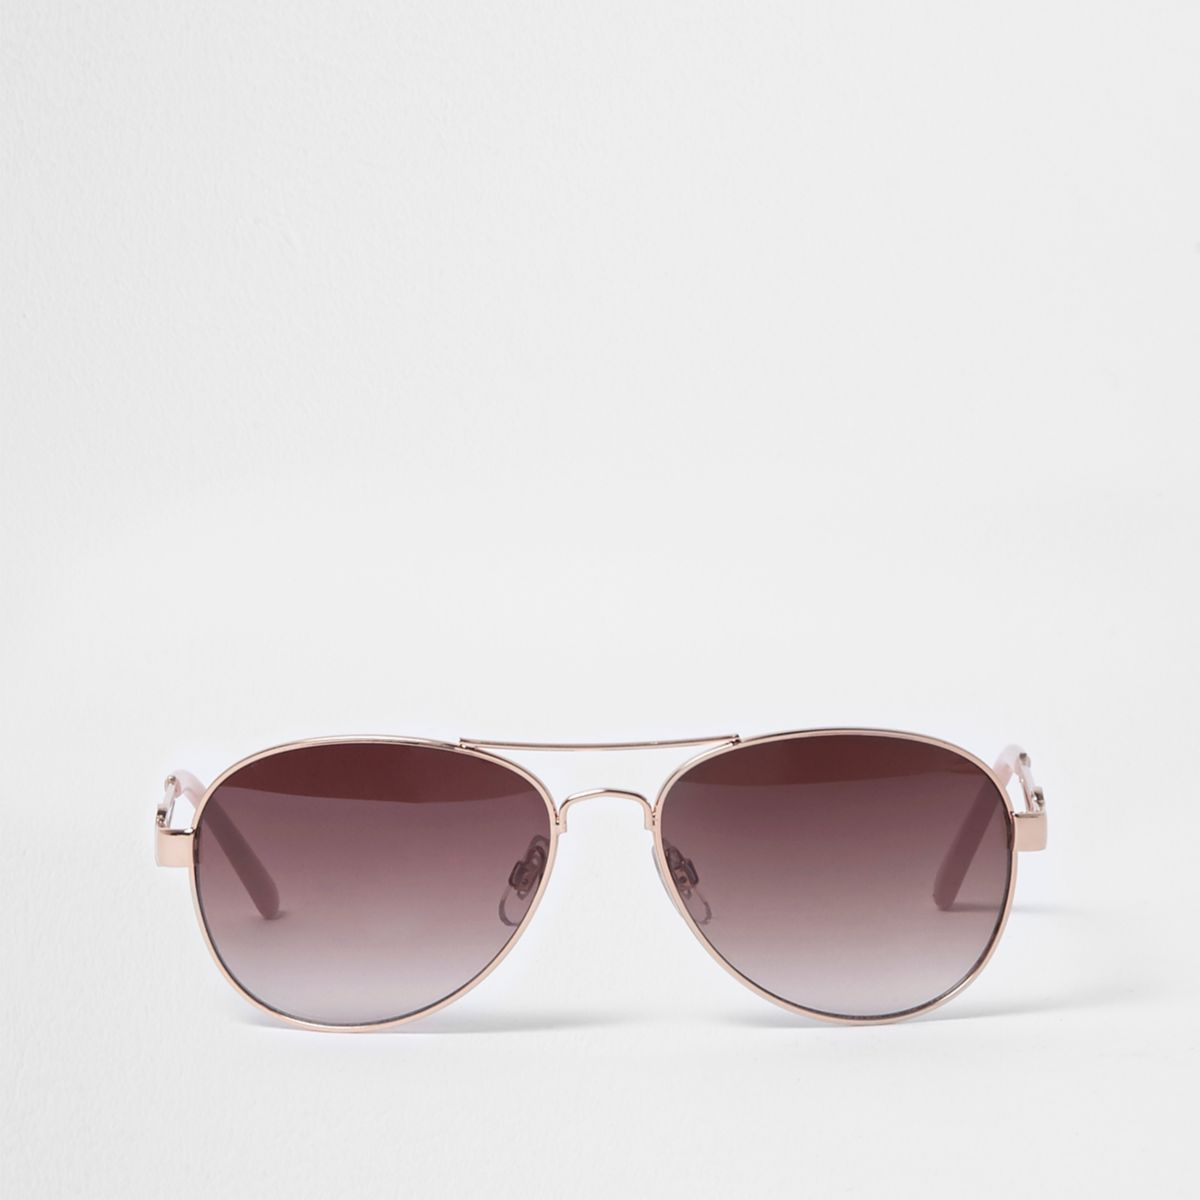 Rose gold tone aviator sunglasses